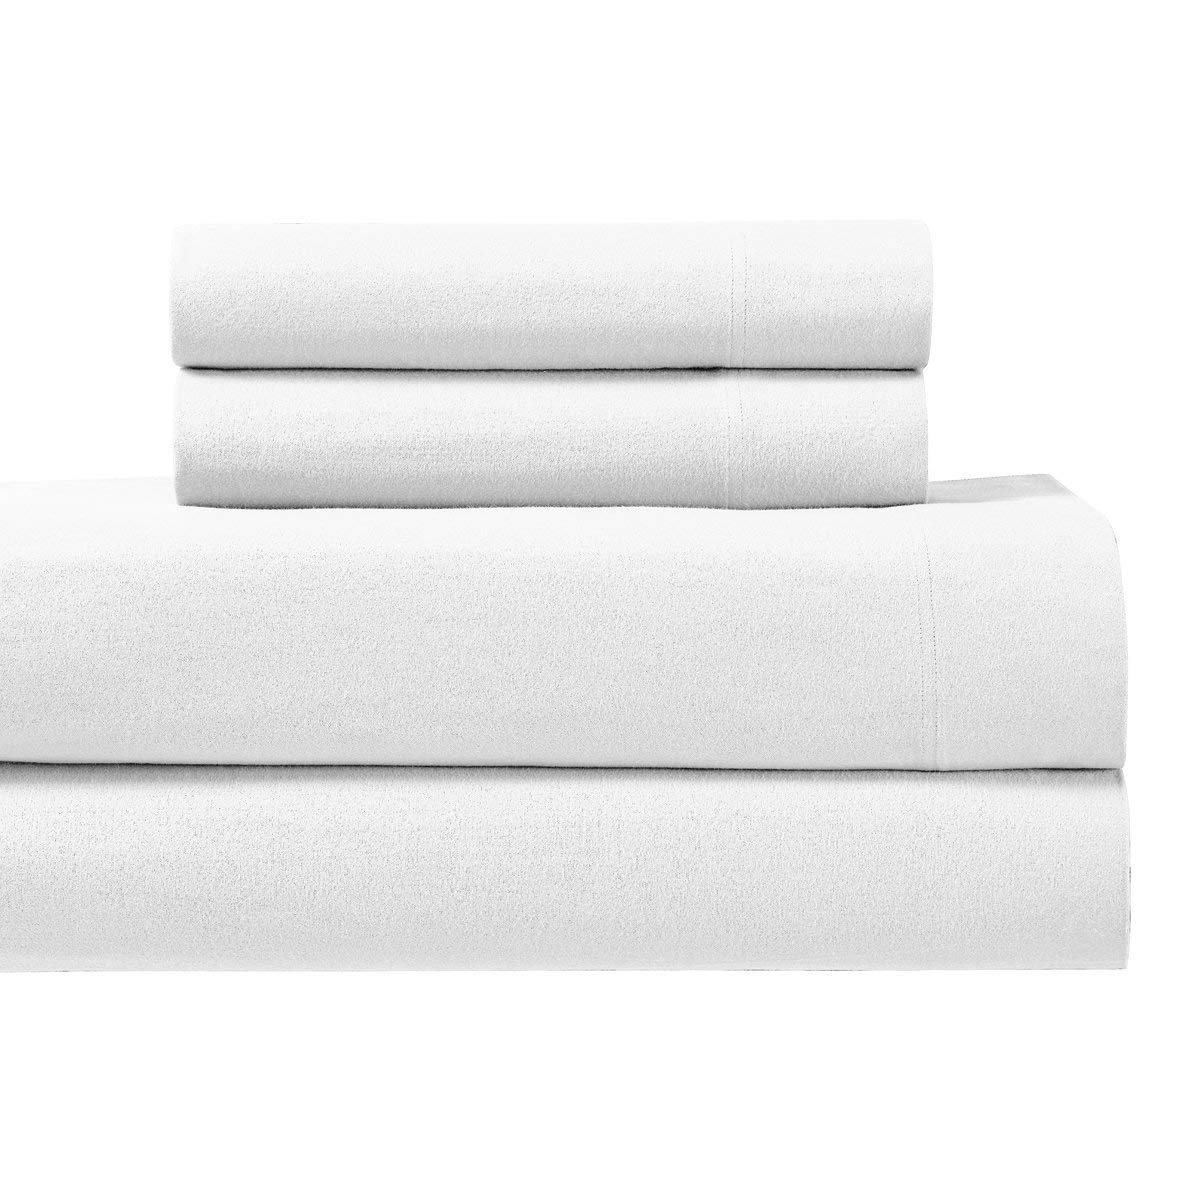 Royal's Heavy Soft 100% Cotton Flannel Sheets, 3pc Bed Sheet Set, Deep Pocket, Thick, Heavy and Ultra Soft Cotton Flannel, White, Twin XL Royal Hotel Bedding